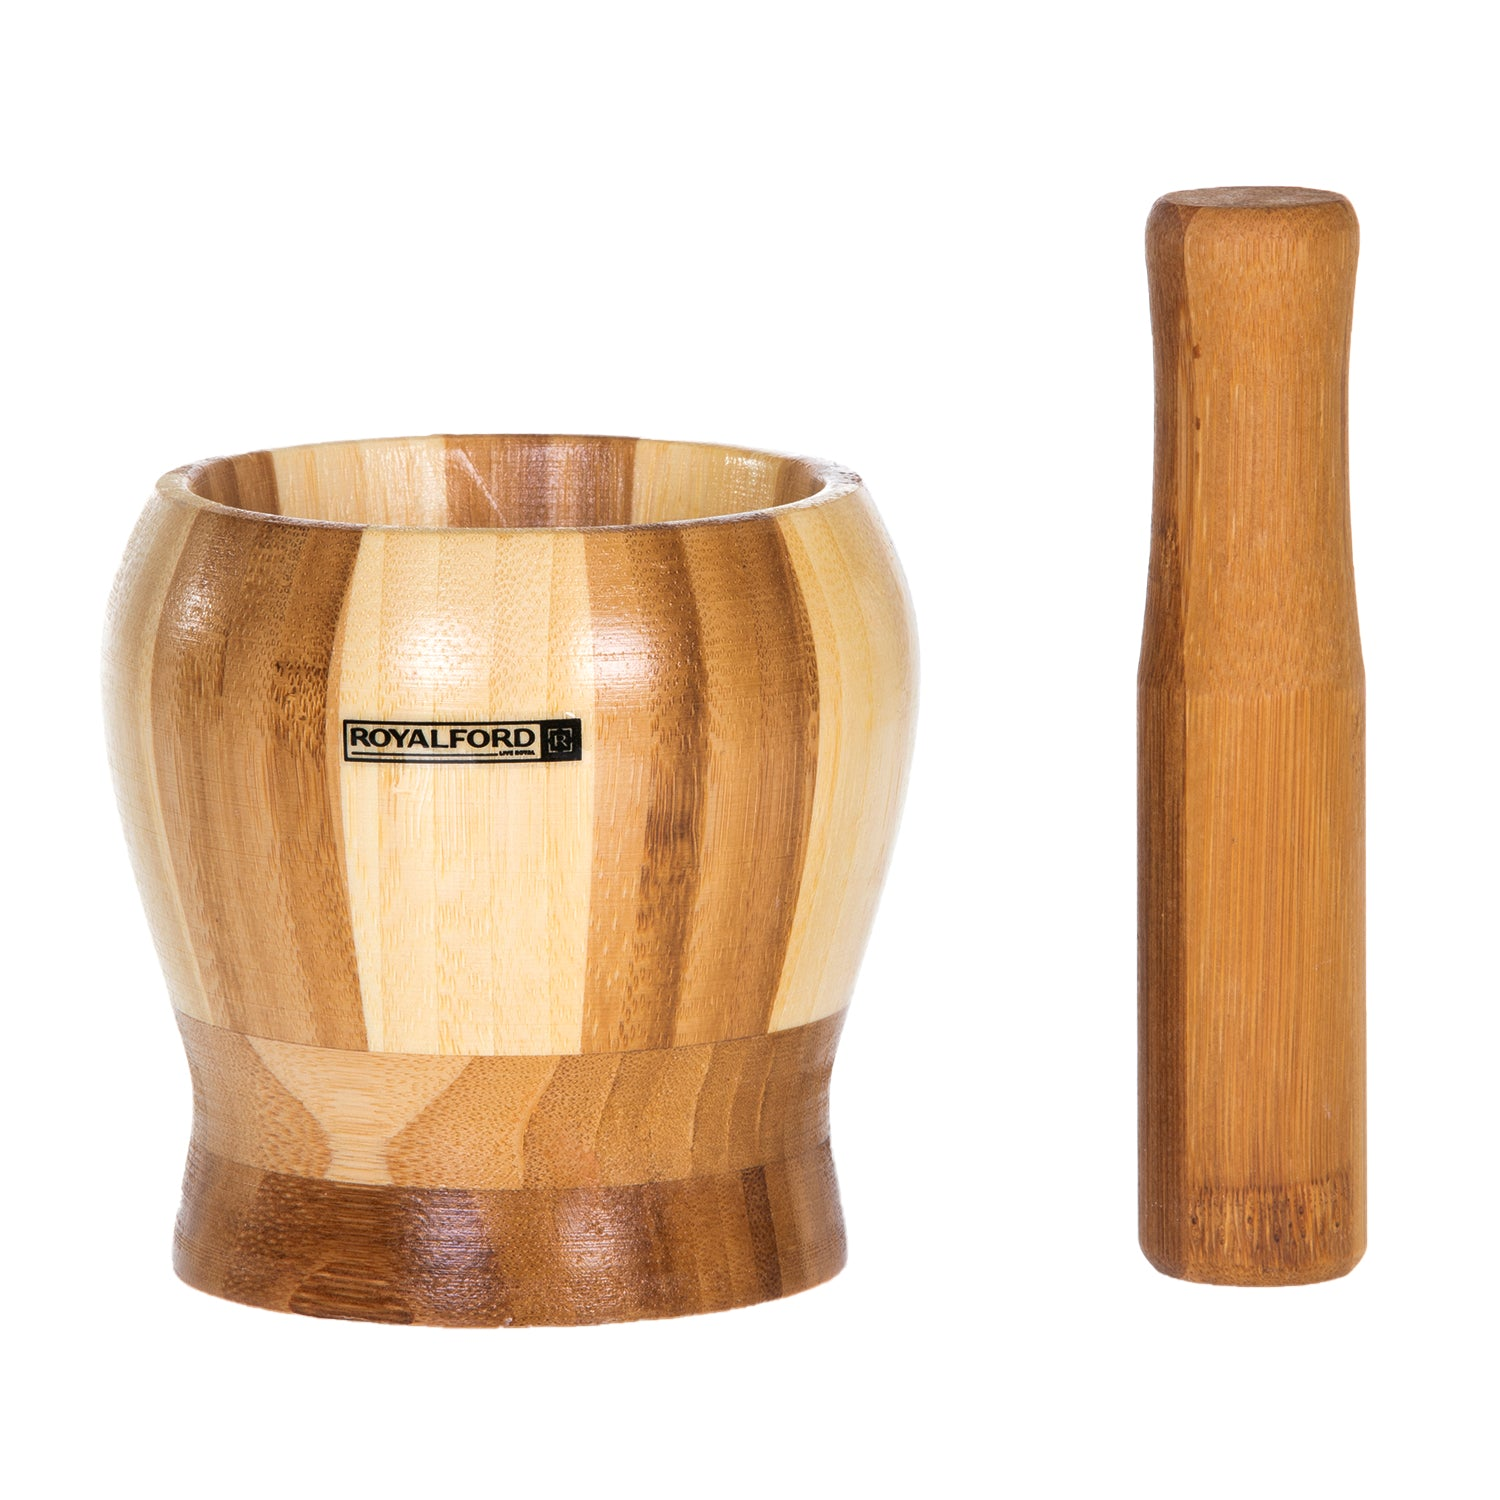 Royalford RF6018 Bamboo Grinding Bowl | Pestle & Mortar Set | Premium Bamboo | 16cm (6.3 Inch ) Diameter | Ideal for Herbs, Spices, Ginger, Garlic Grinder & Crusher | Natural Pestle & Mortar Set | Durable, Long-Lasting & Easy Cleaning